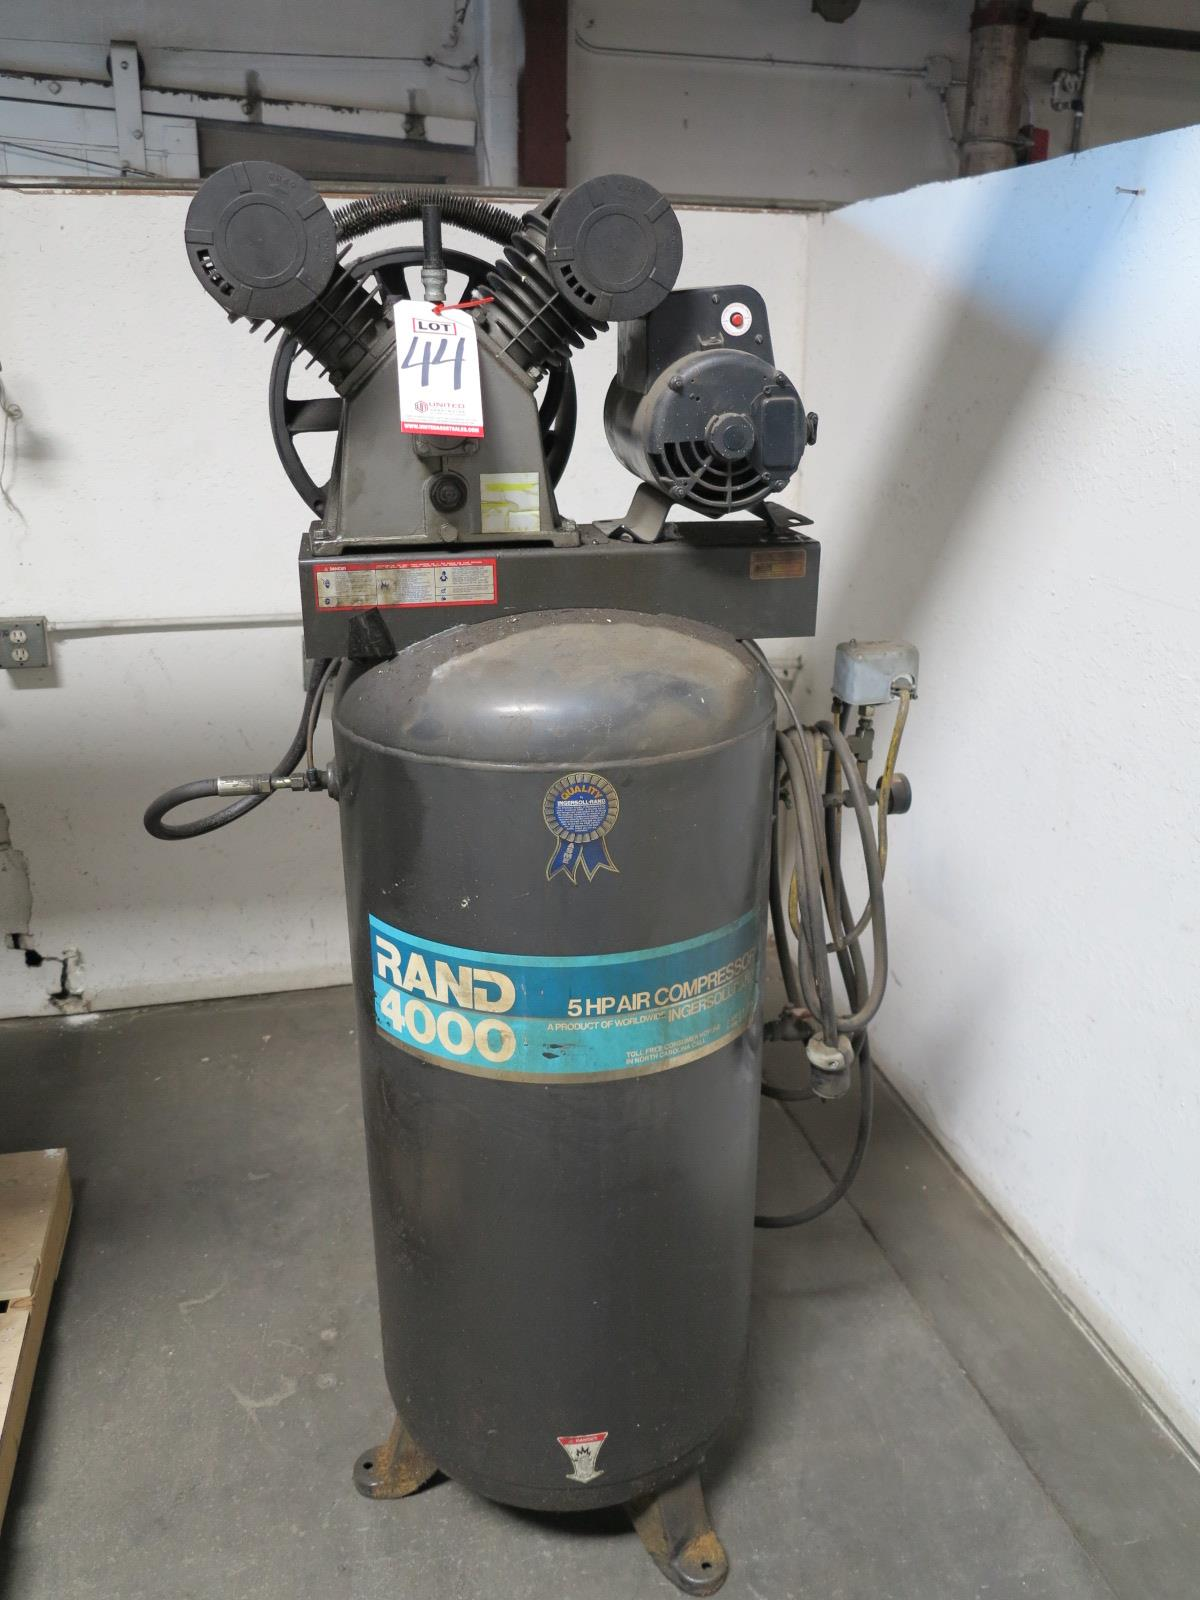 Lot 44 - INGERSOLL-RAND 5 HP AIR COMPRESSOR, MODEL RAND 4000, 60 GAL TANK, MOTOR IS UNATTACHED